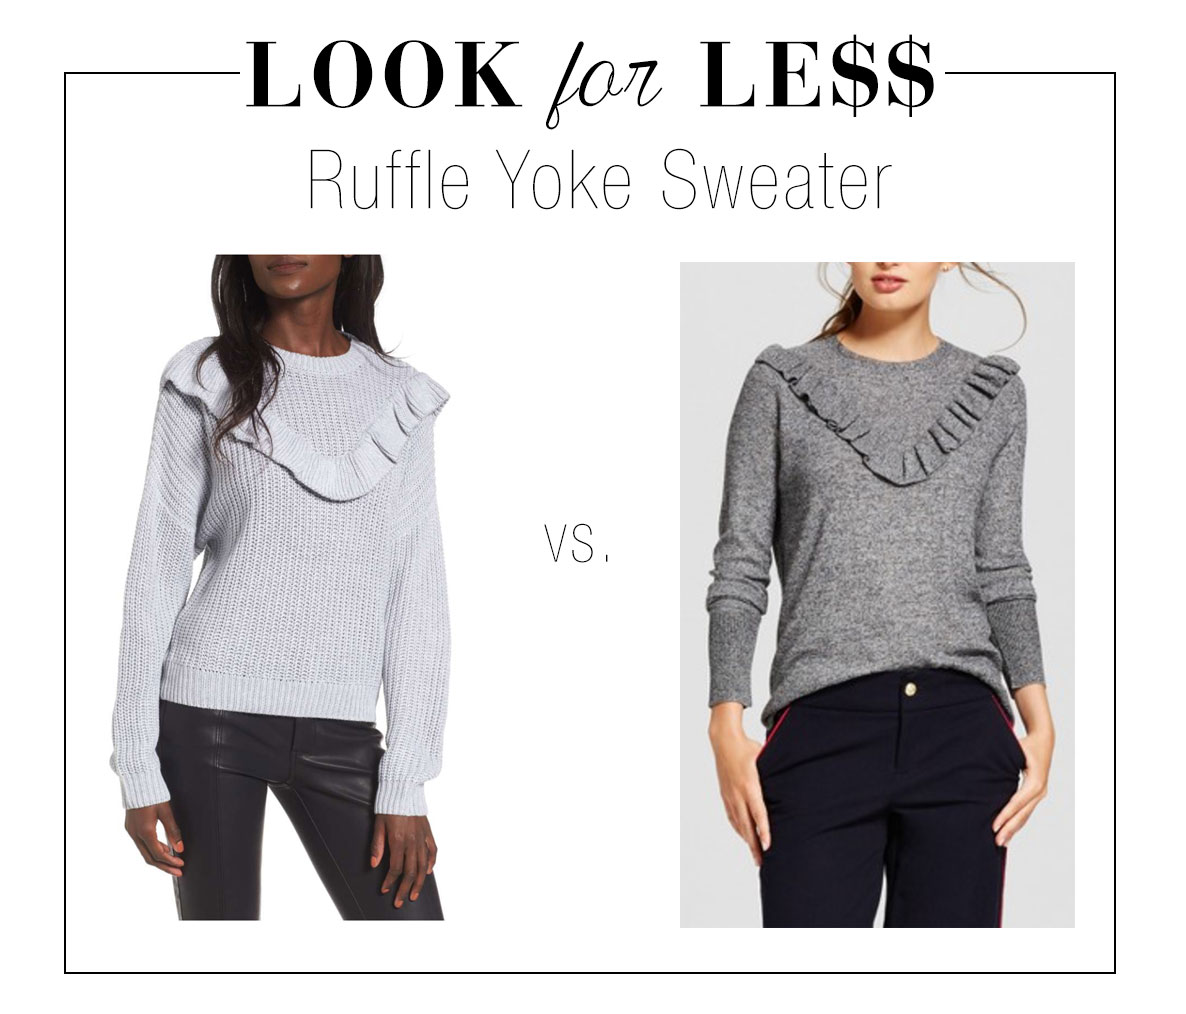 Ruffle yoke sweater look for less